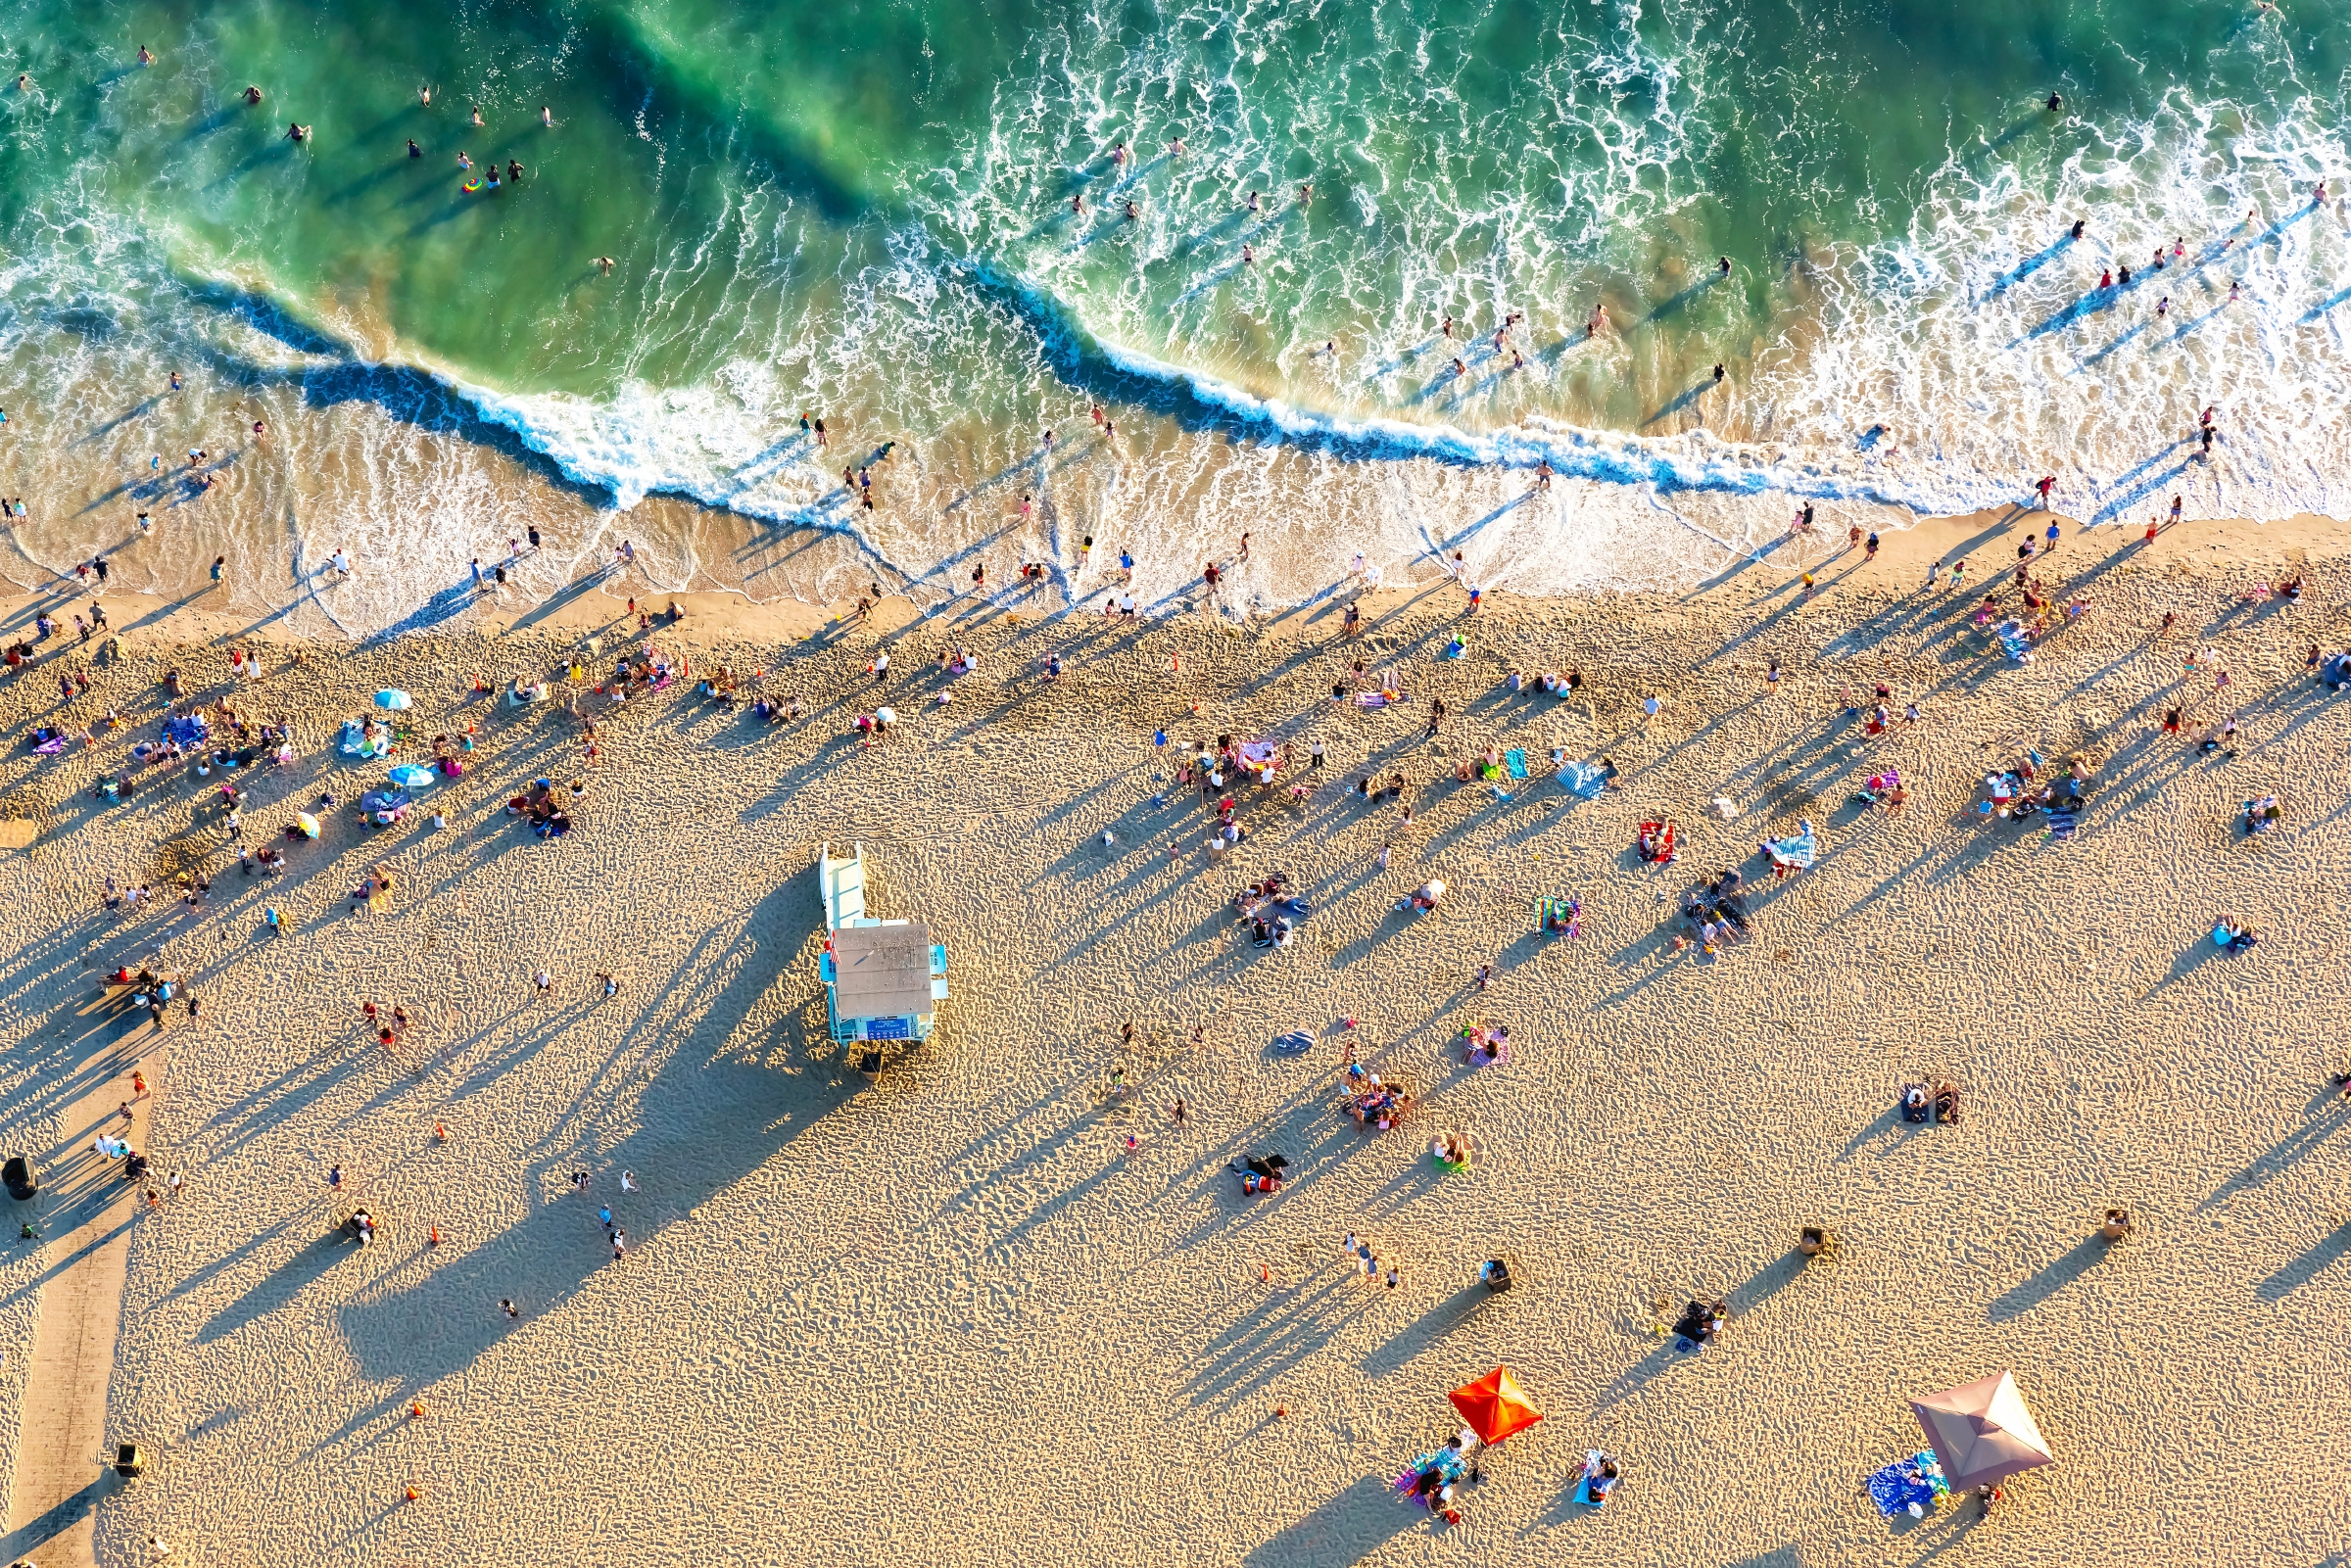 Aerial view of the beach in Santa Monica, CA.